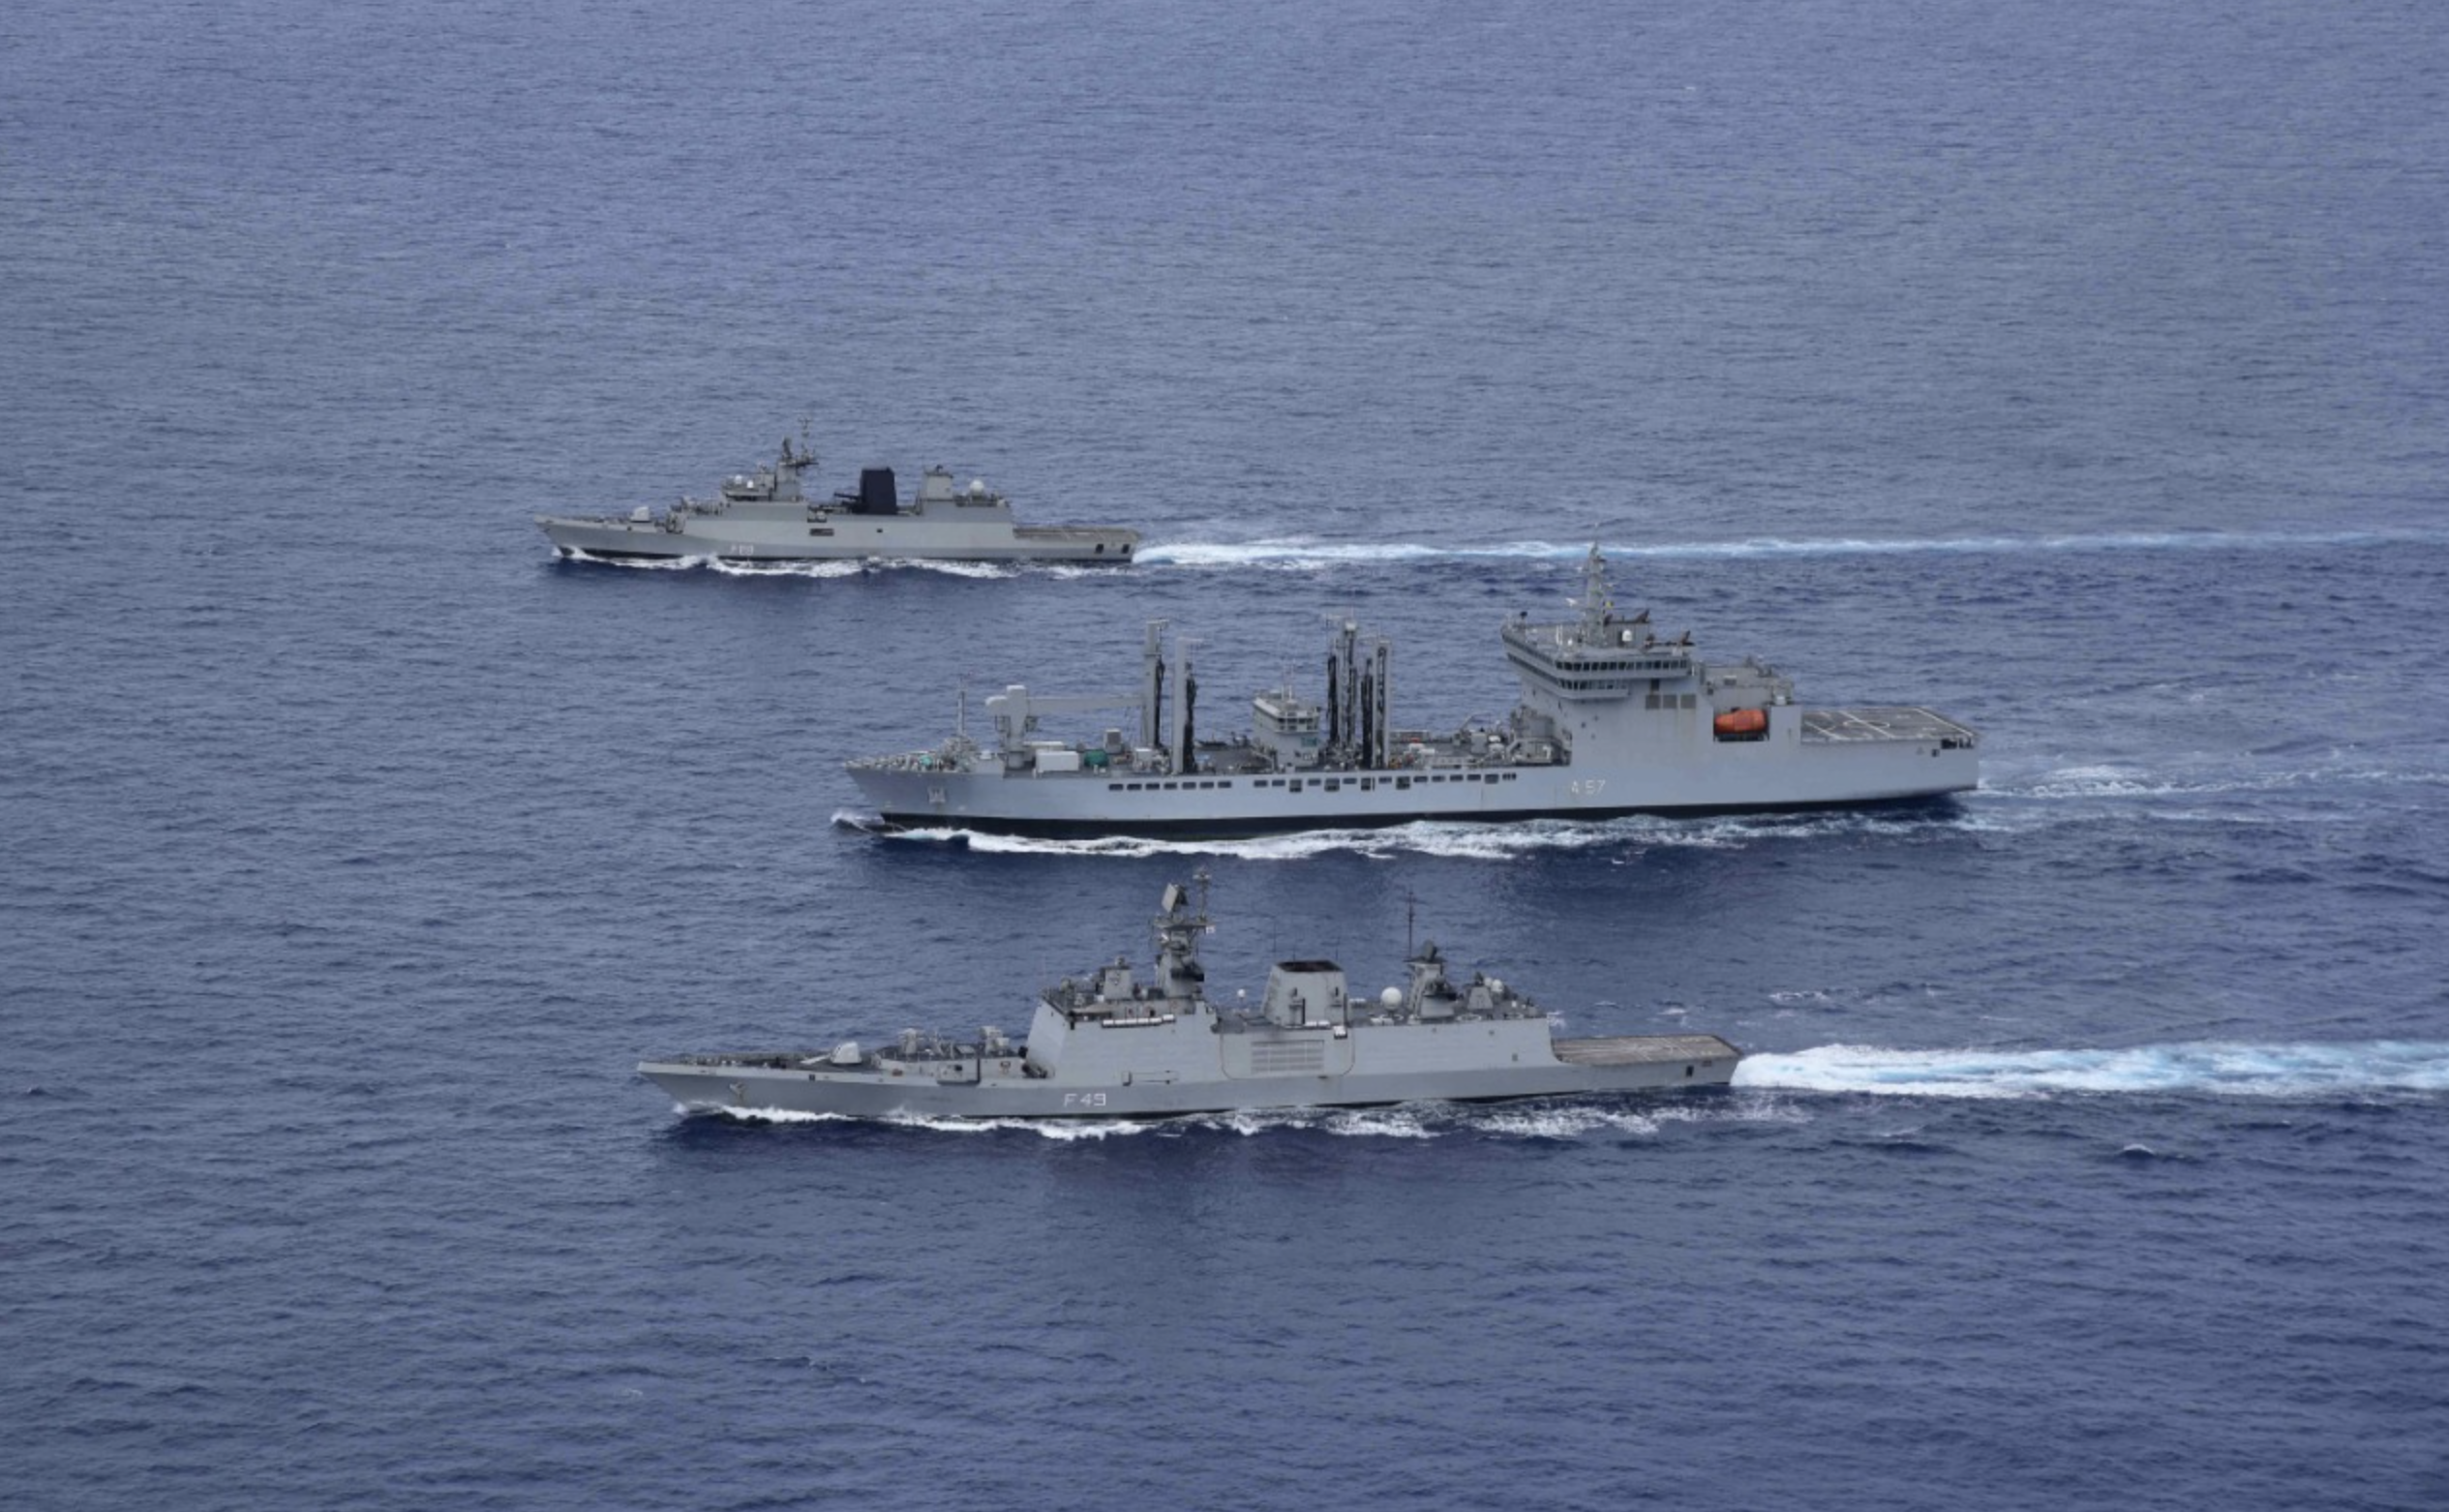 Countering China in IOR, Indian Navy Conducts Largest War Games